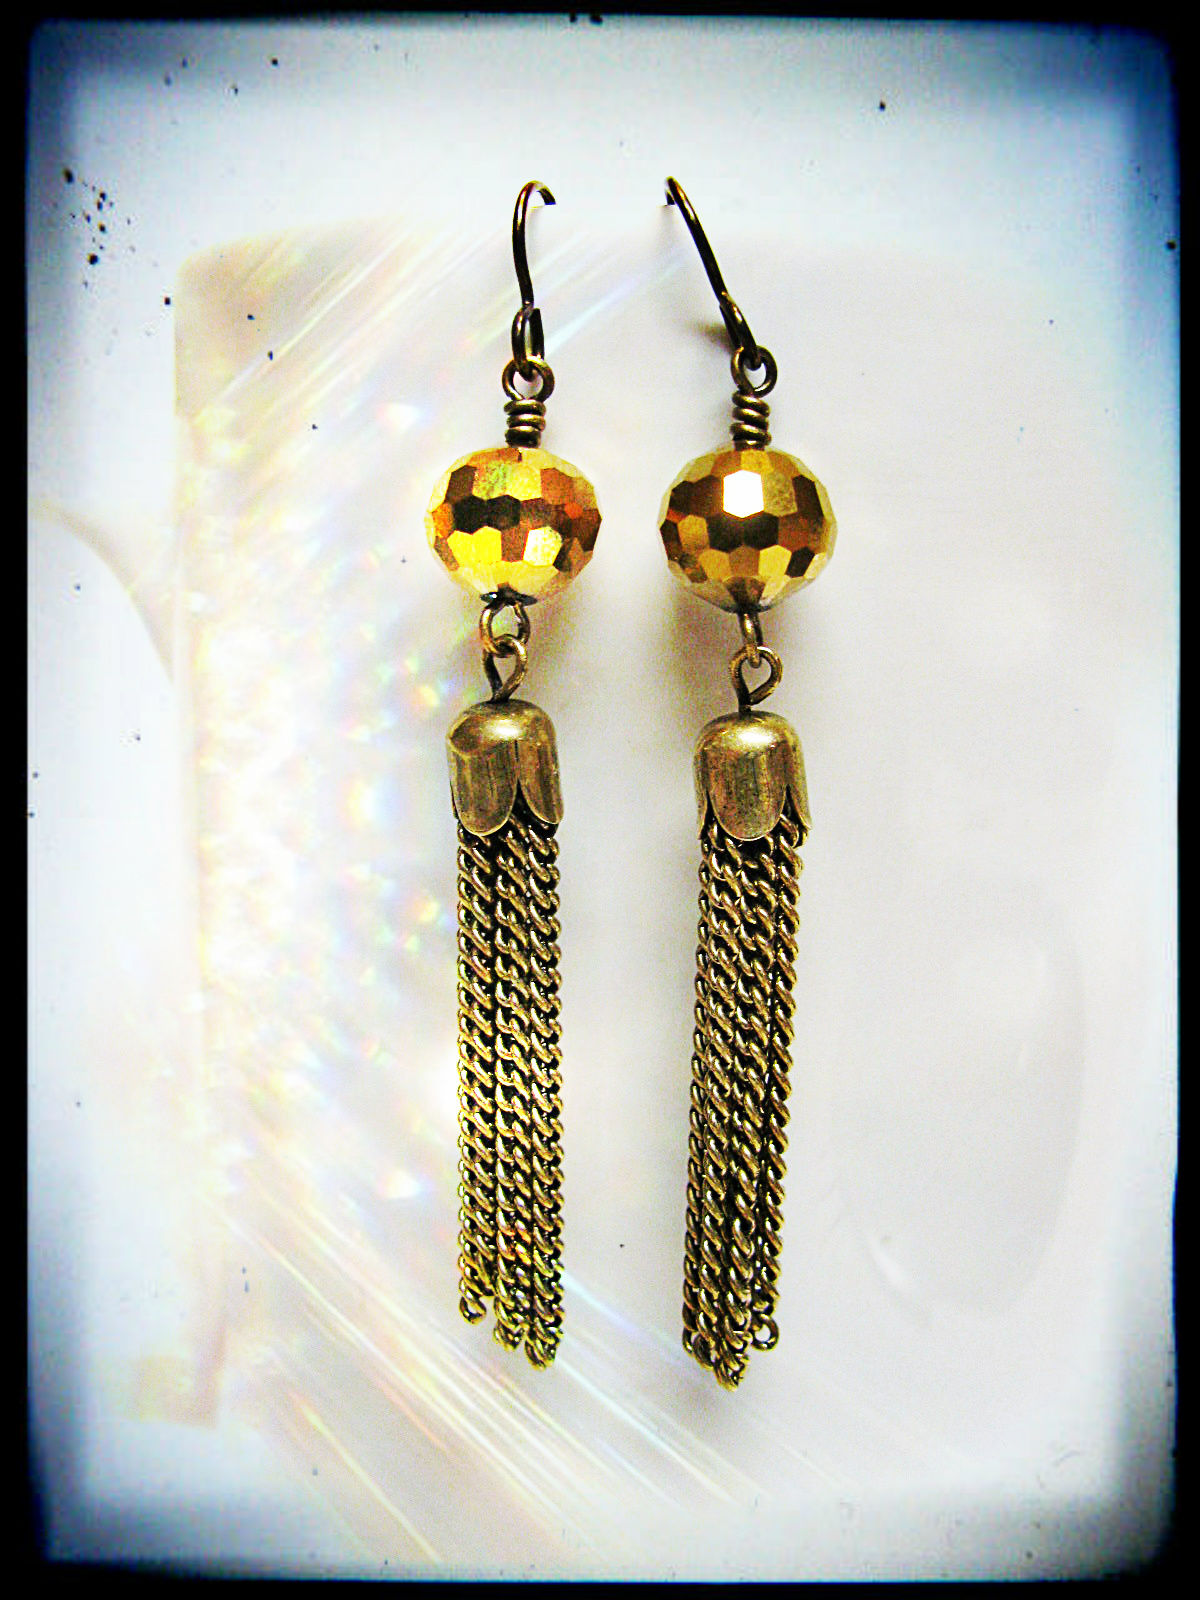 These earrings are similar to the ones worn above by Laurin.